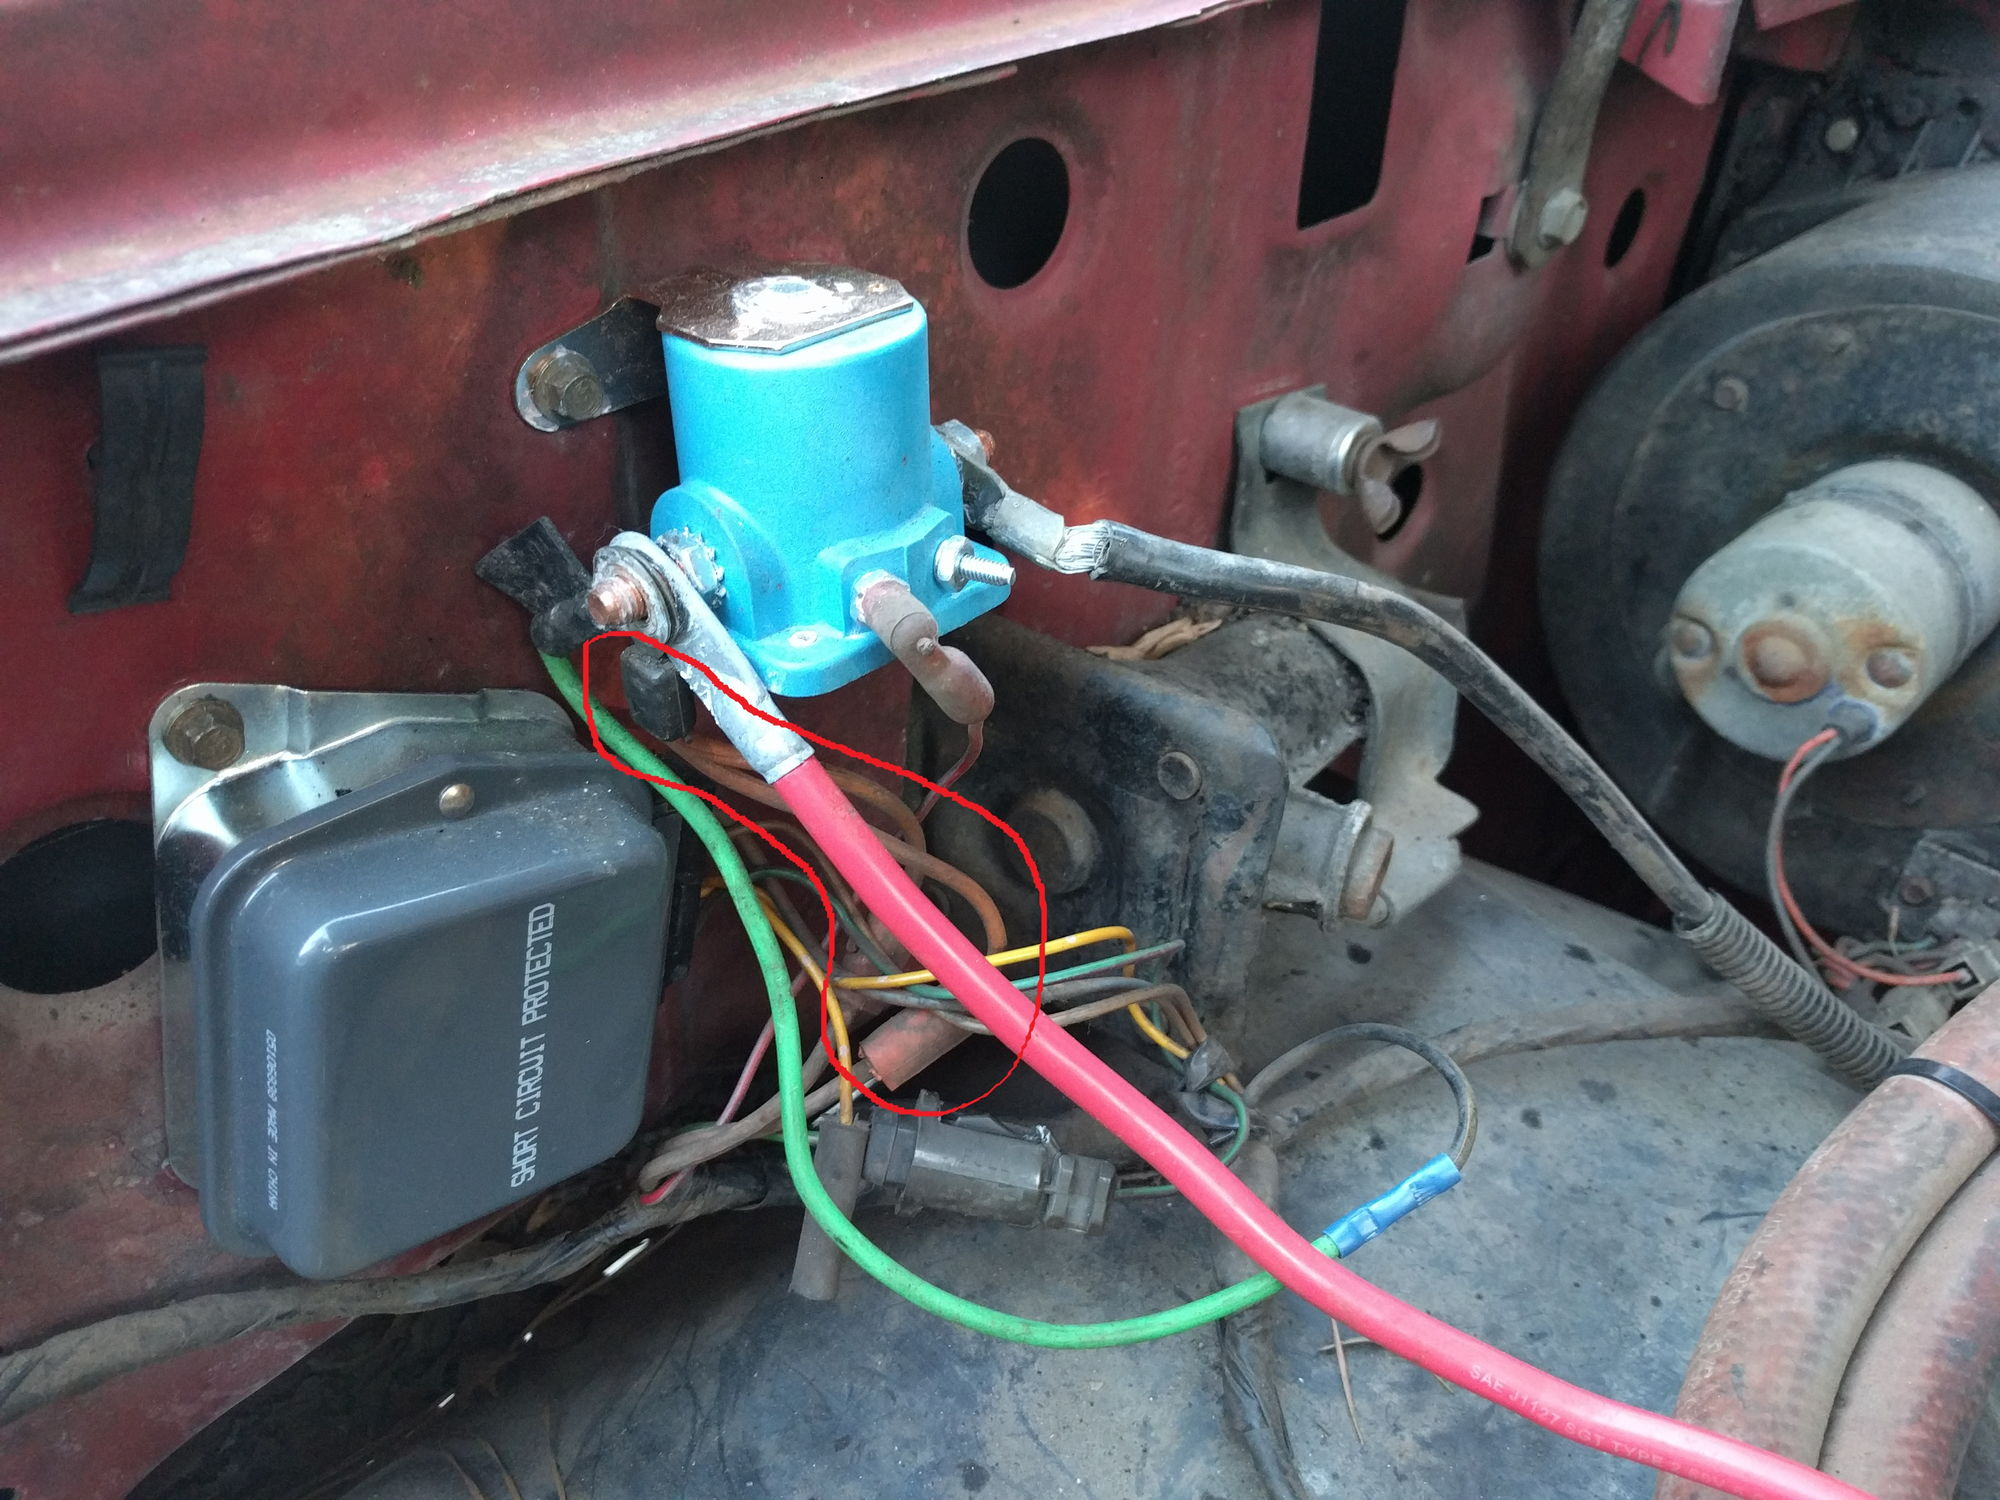 87 Ford Alternator Wiring Books Of Diagram 1987 1981 No Power At All Where Are The Fusible Line F150 Harness